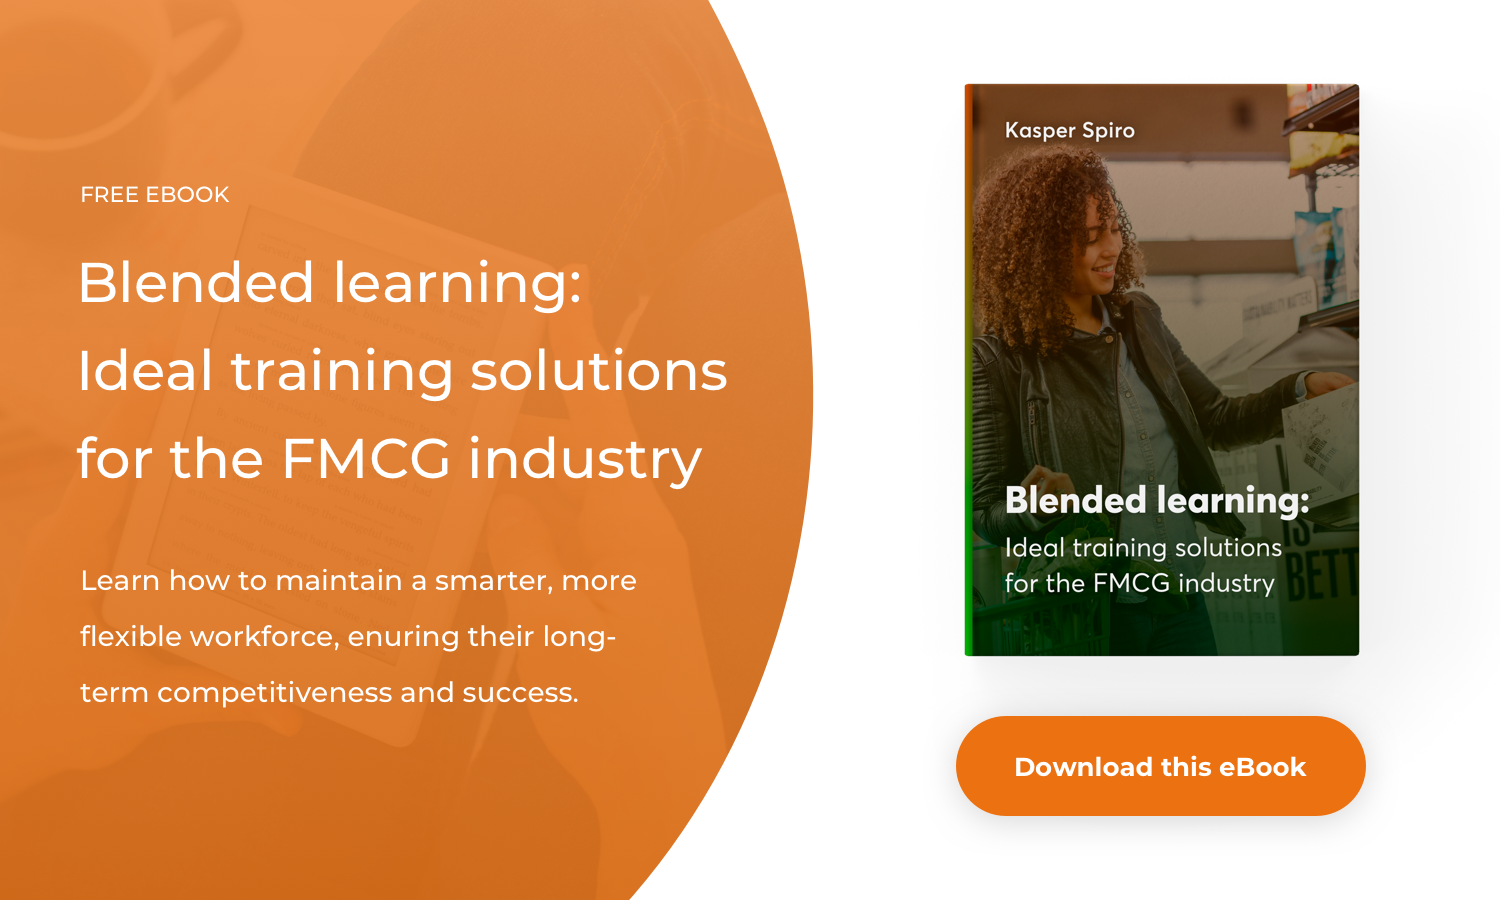 Blended learning in FMCG